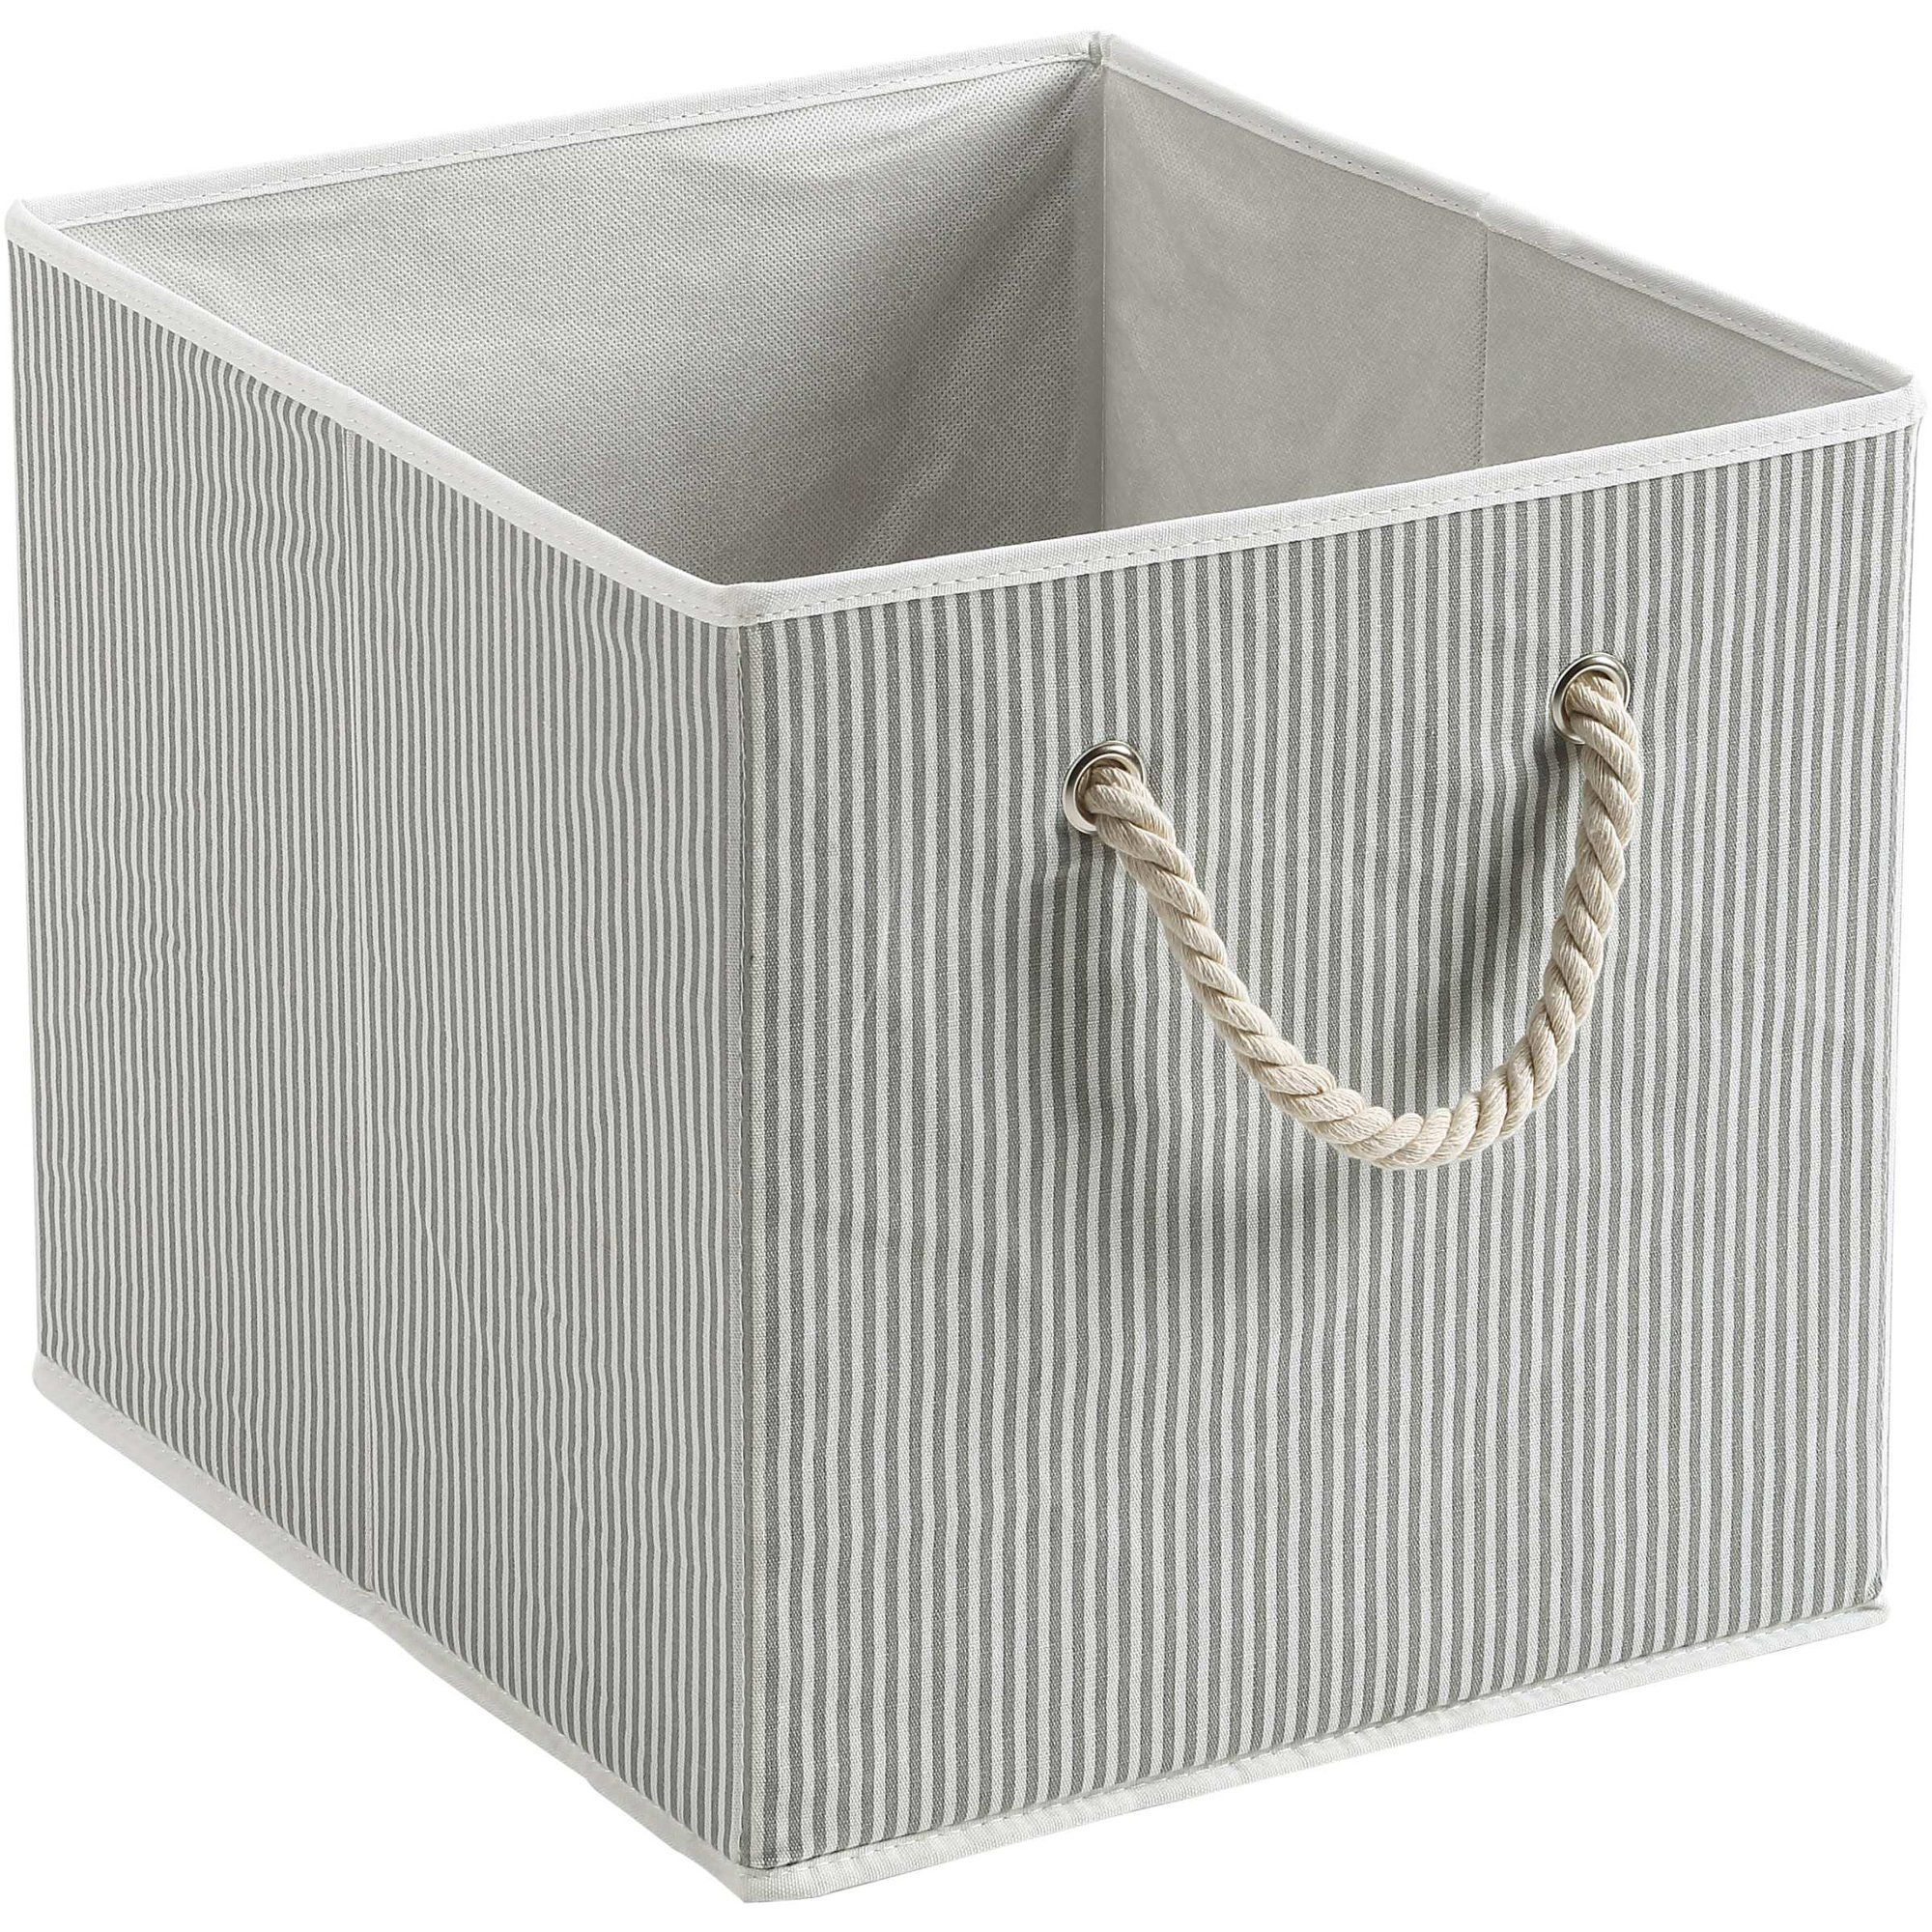 Better Homes And Gardens Fabric Storage Bin Gray